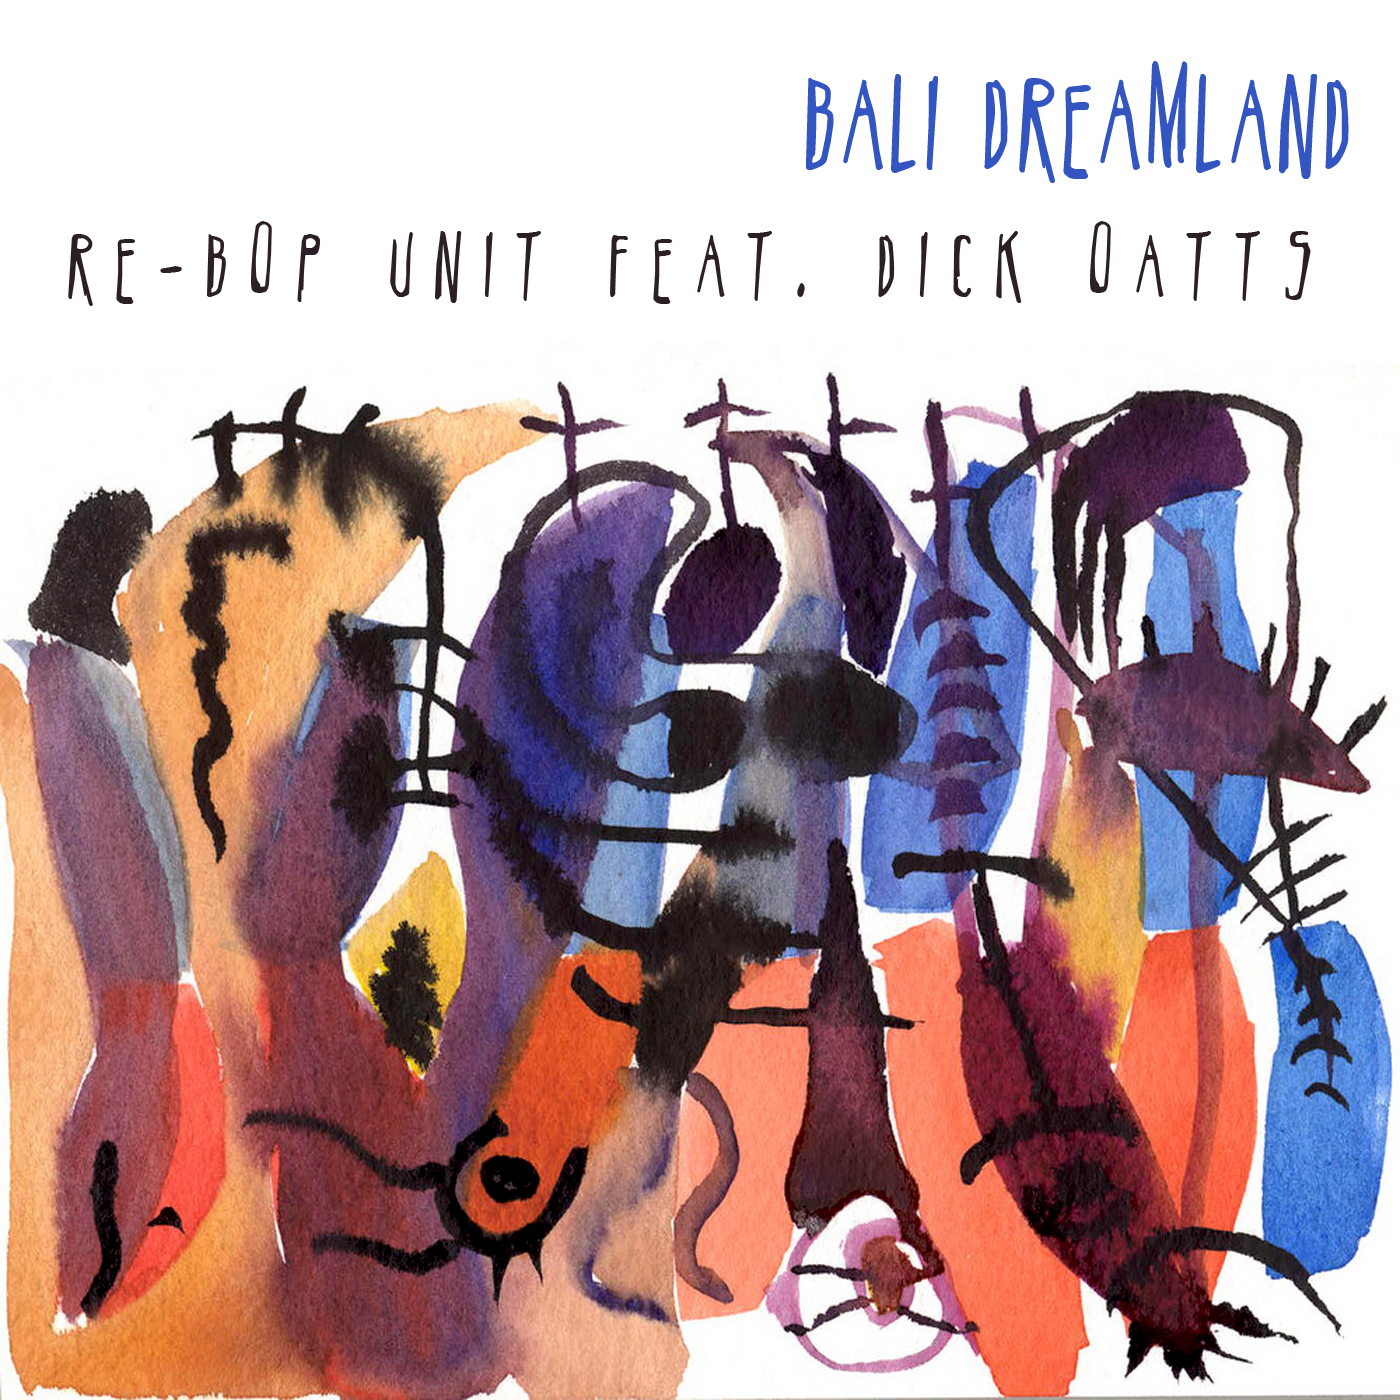 Re-bop Unit feat. Dick Oatts